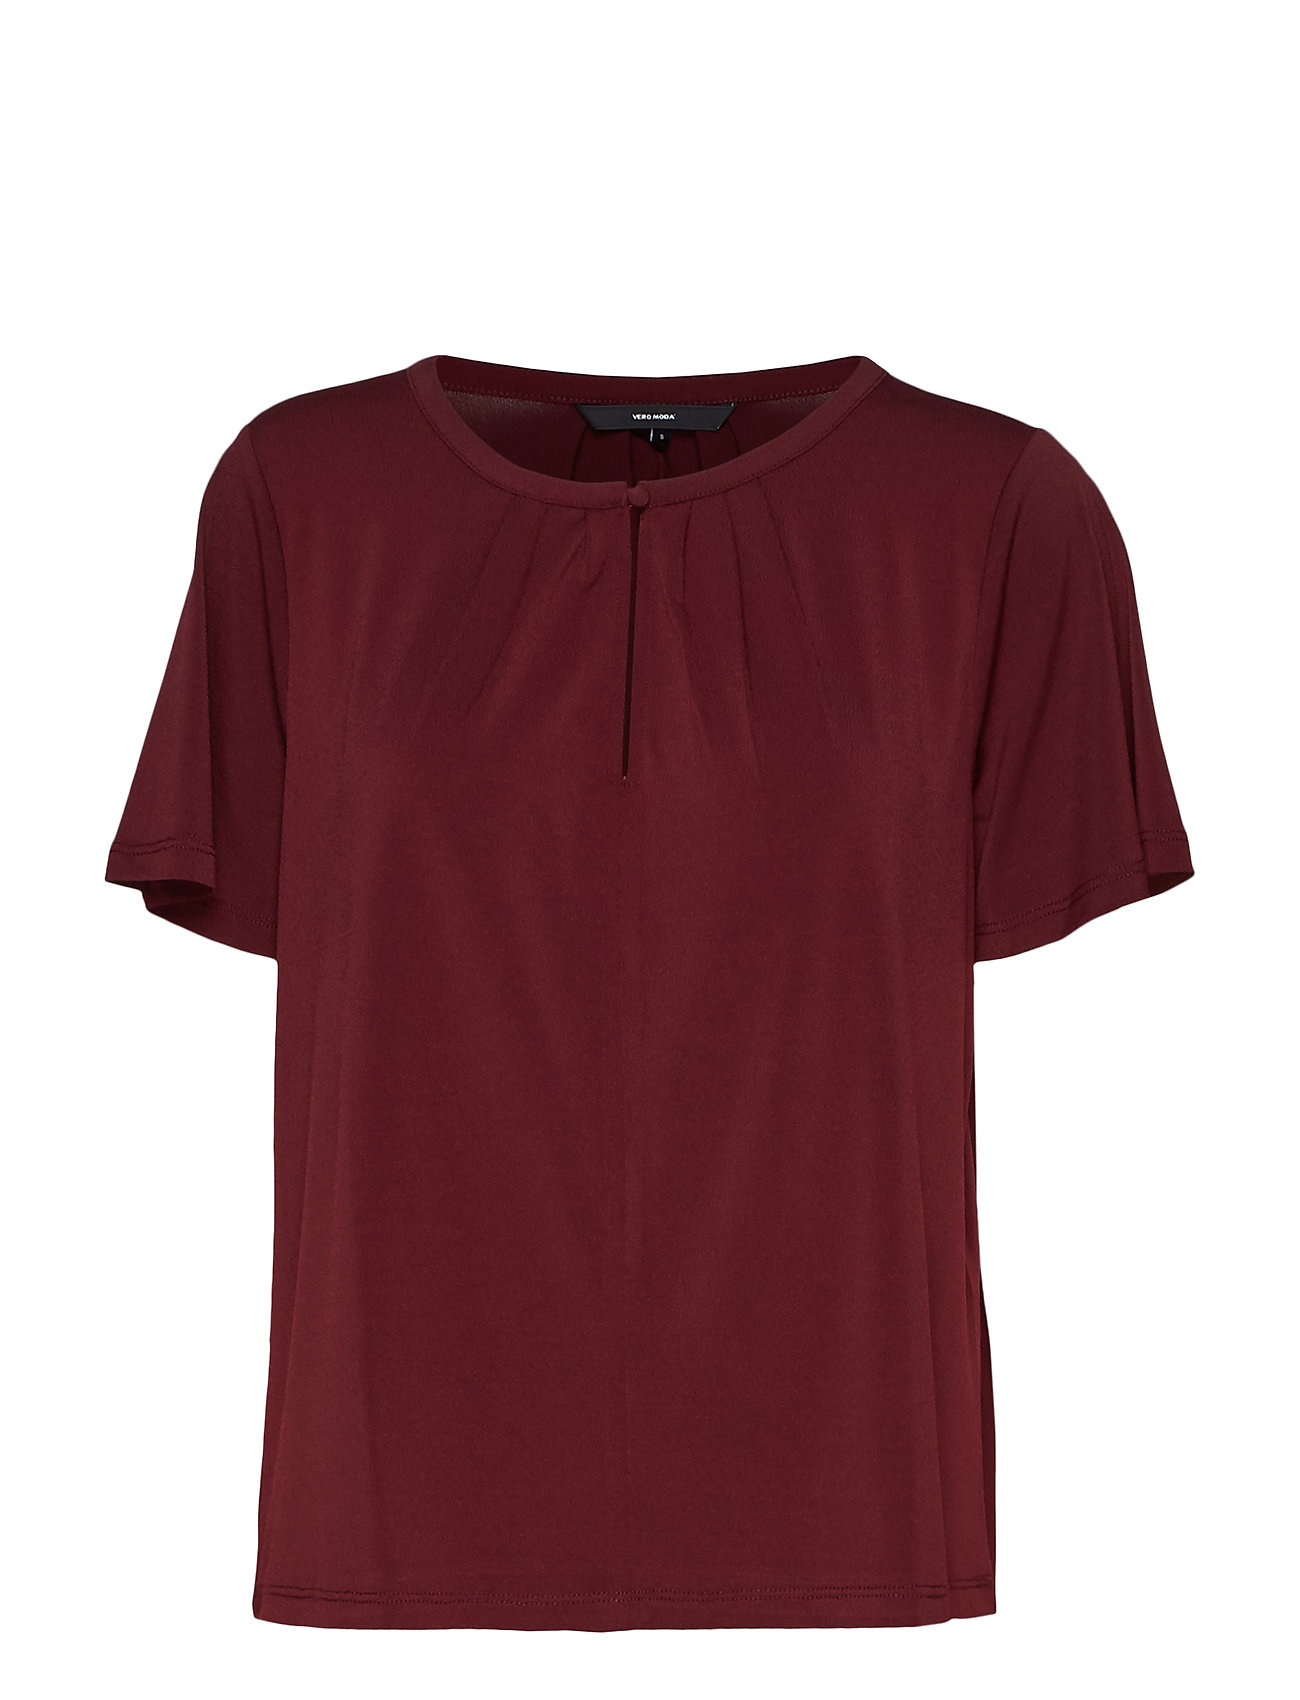 Vero Moda VMMILLA SS BUTTON TOP - PORT ROYALE